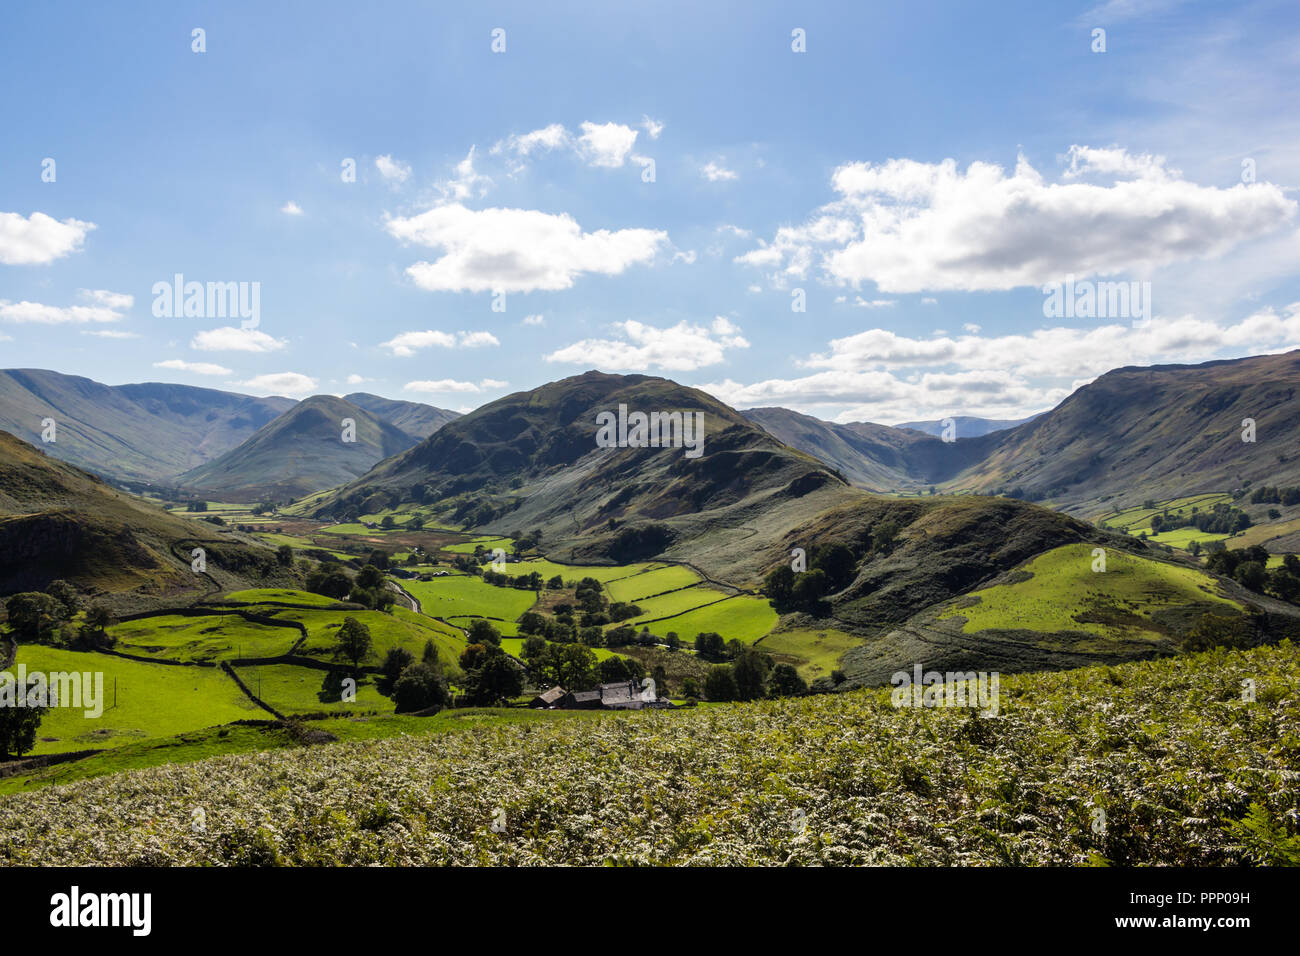 View from Hallin Fell to Martindale and Boardale valleys with Beda Fell  in centre. Lake District, England. Stock Photo